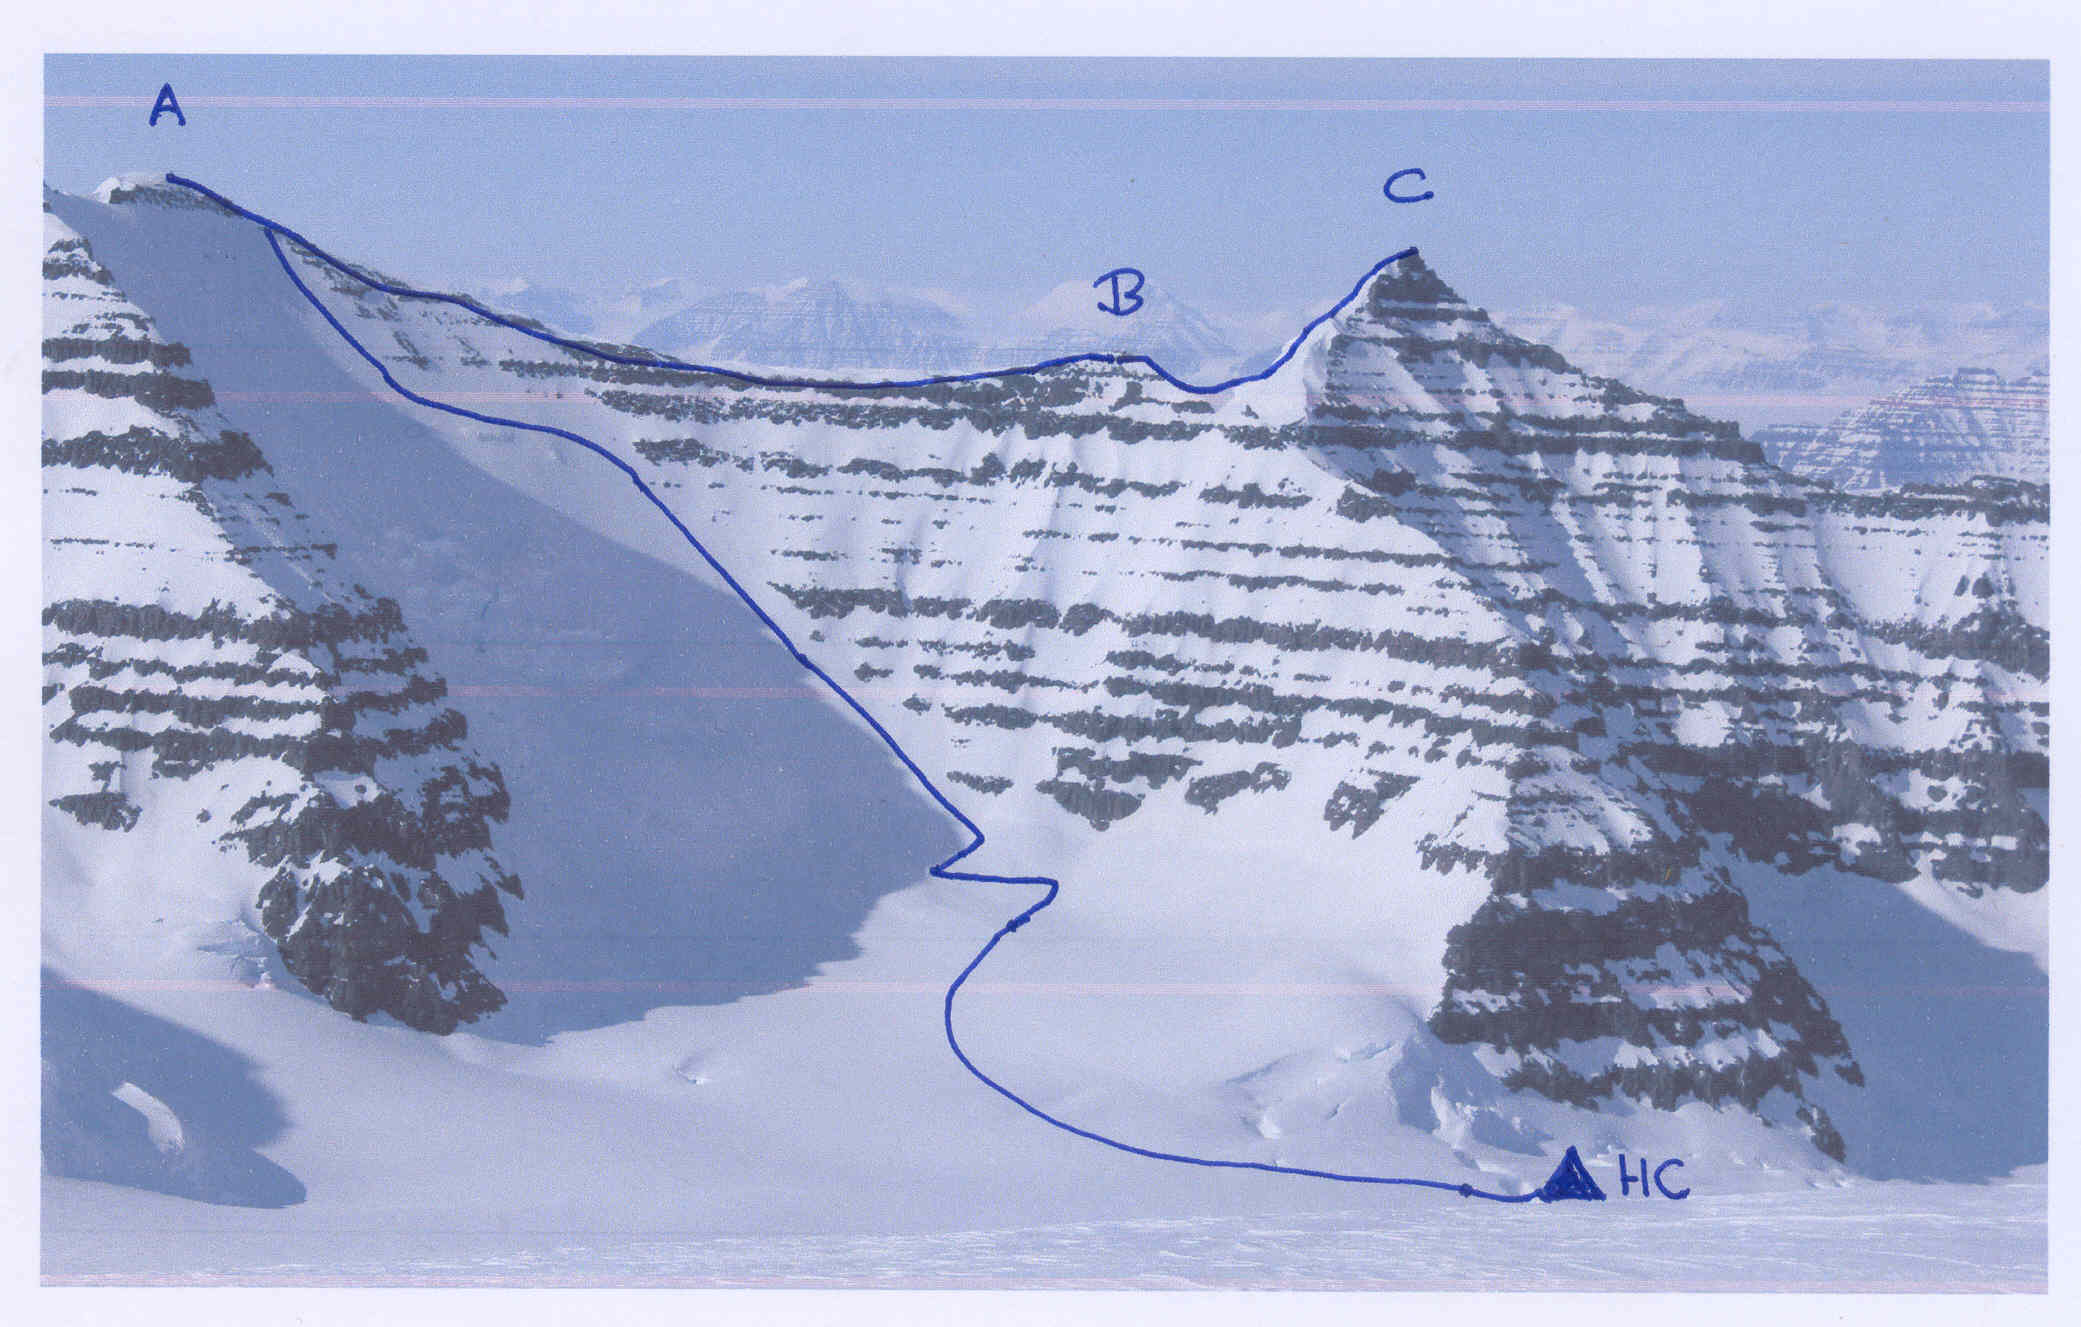 (A) Peak 3,003m, (B) Peak 2,873m, and (C) Peak 2,950m from Peak 3,001m to the east. (HC) is the 2,400m camp on the glacier.